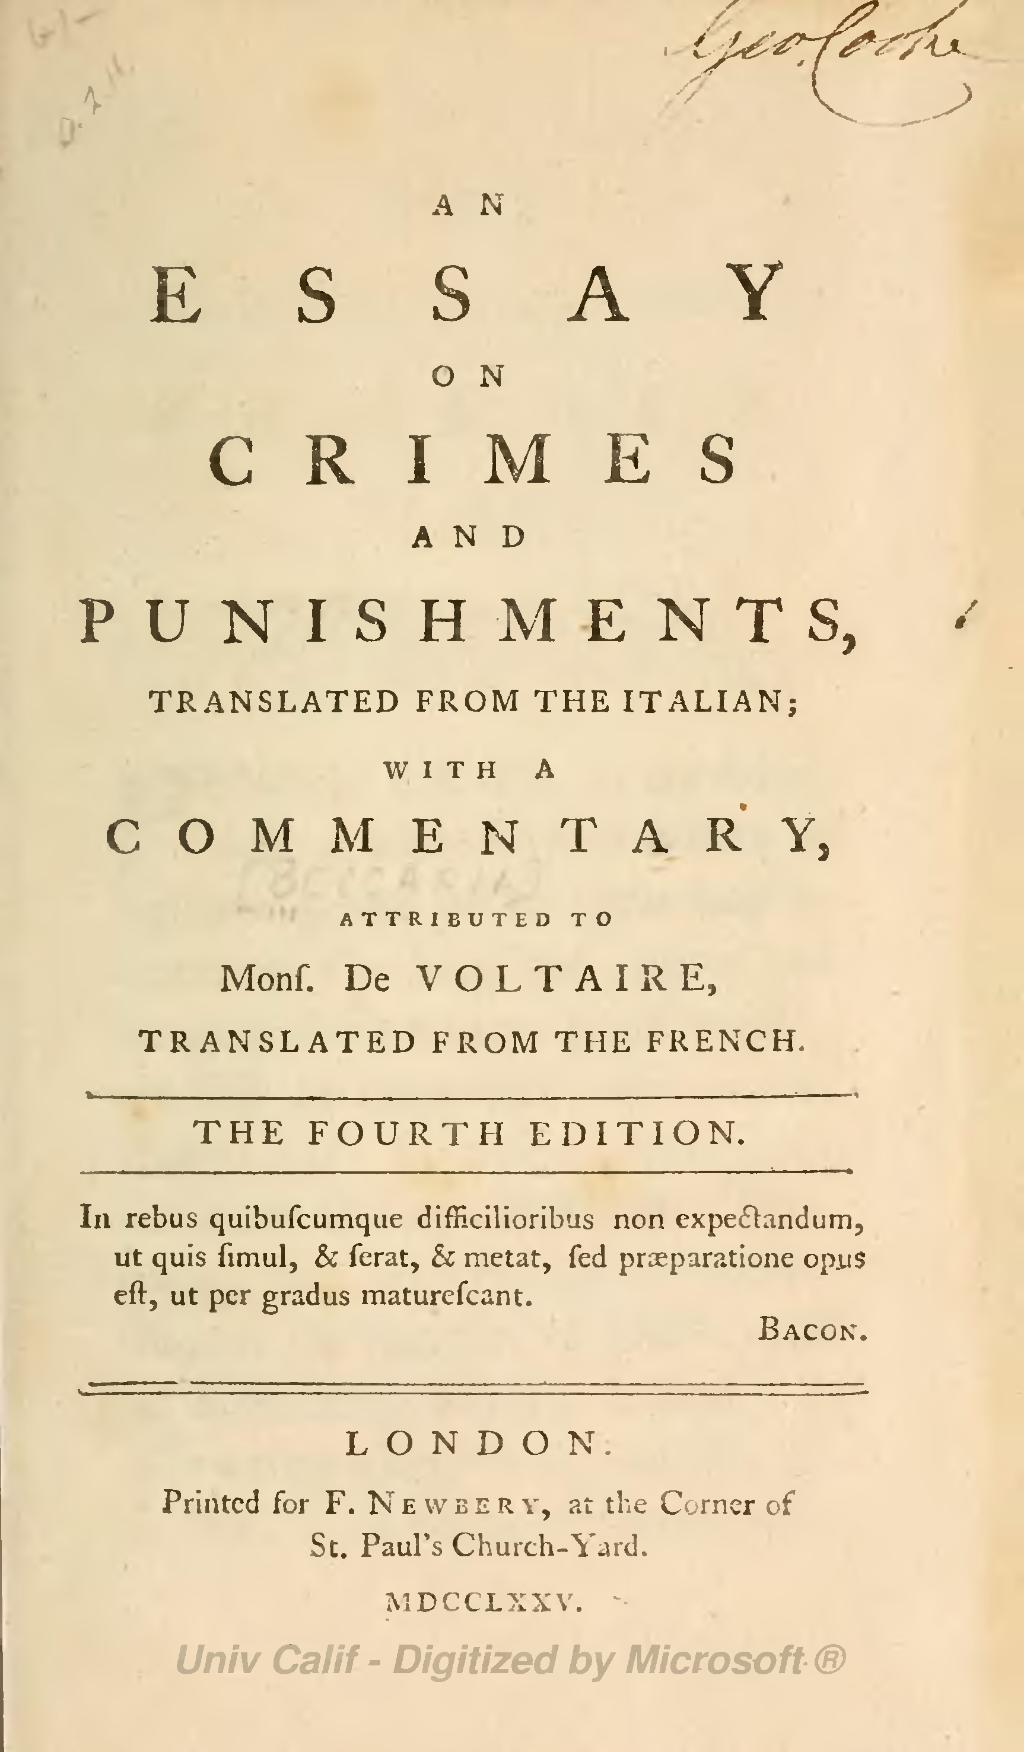 Pageessay On Crimes And Punishments Djvu  Wikisource The  Pageessay On Crimes And Punishments Djvu  Wikisource The Free  Online Library Business Essays also High School Reflective Essay Examples  College Assignment Help Writing